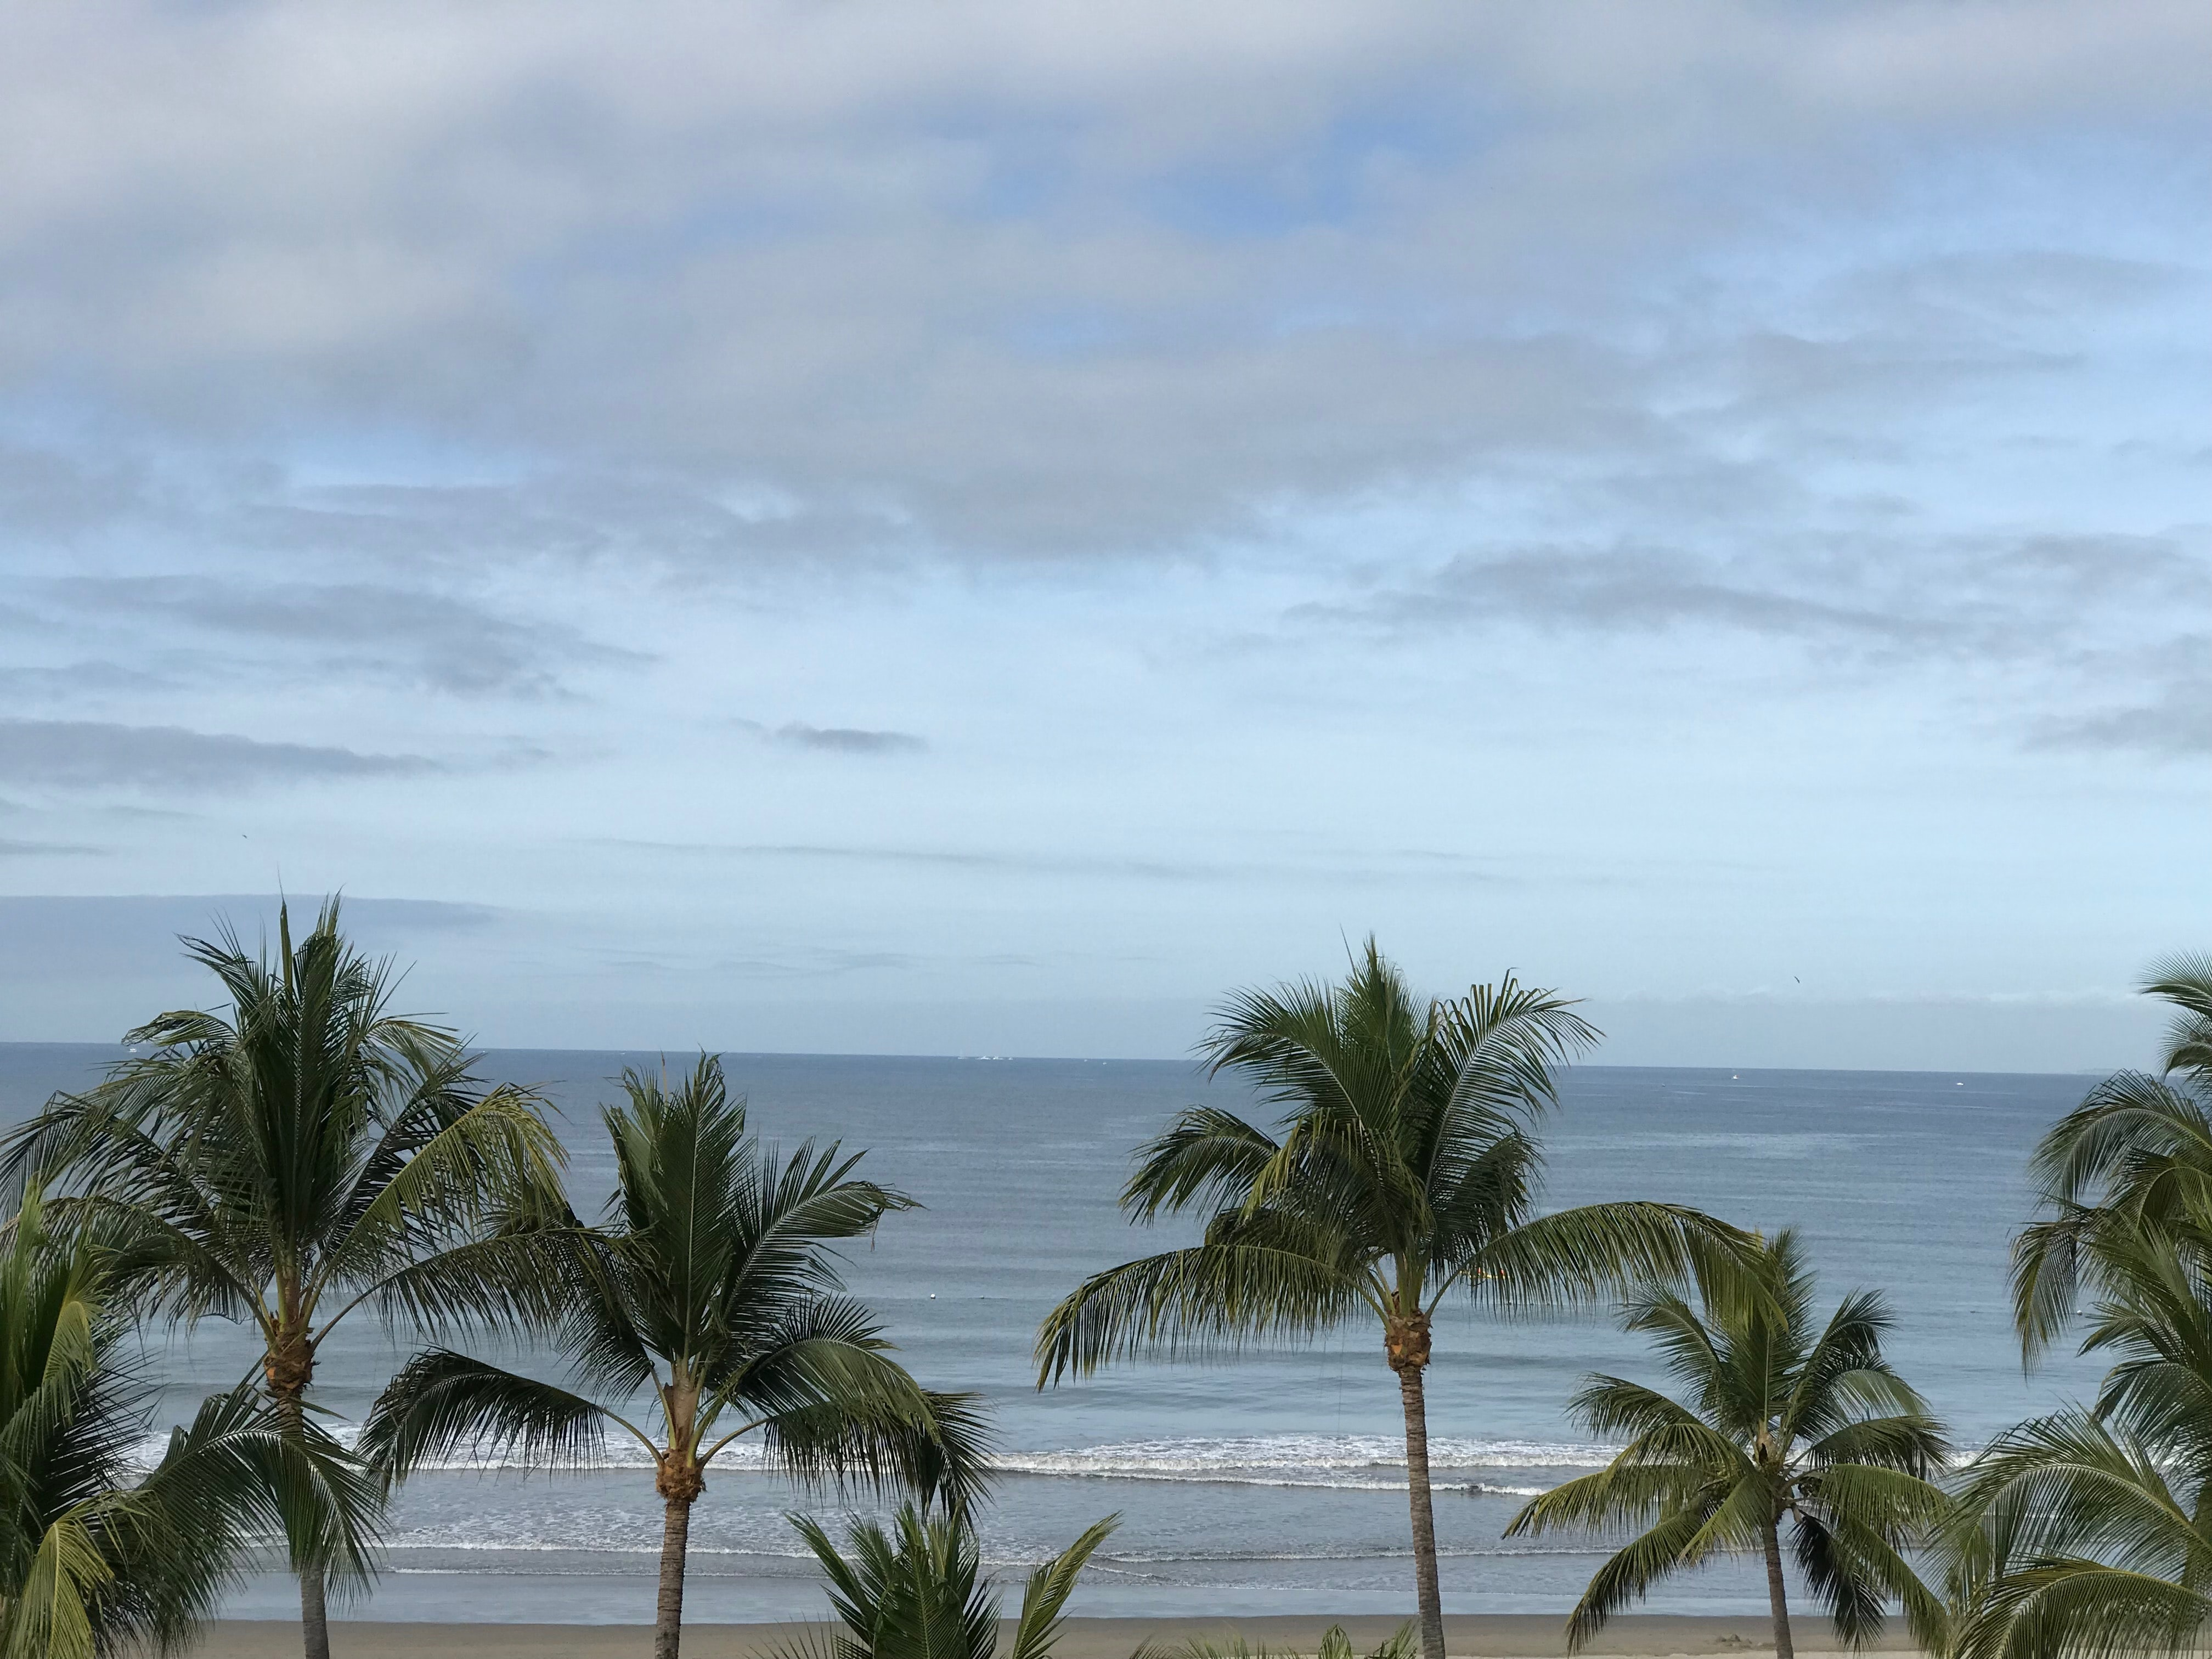 green coconut trees on seashore under white clouds and blue sky